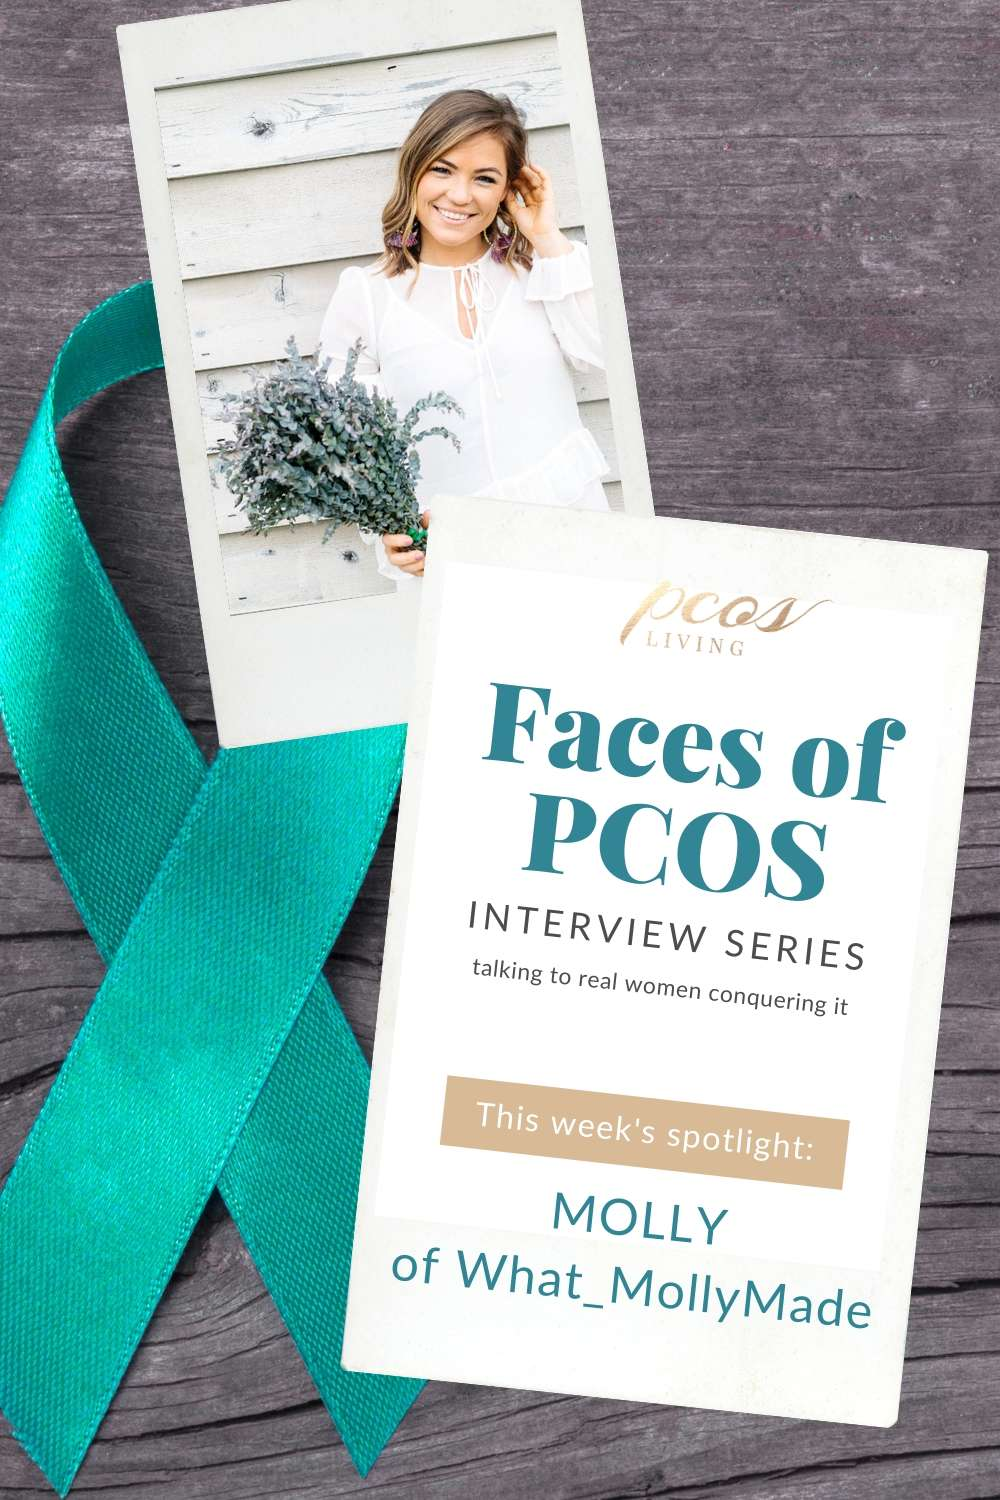 PCOS Living Faces of PCOS Interview Series: Molly Thompson, she talks about how she is beating PCOS. Read her tips and advice.  PCOSLiving.com  #pcos #hormones #womenshealth